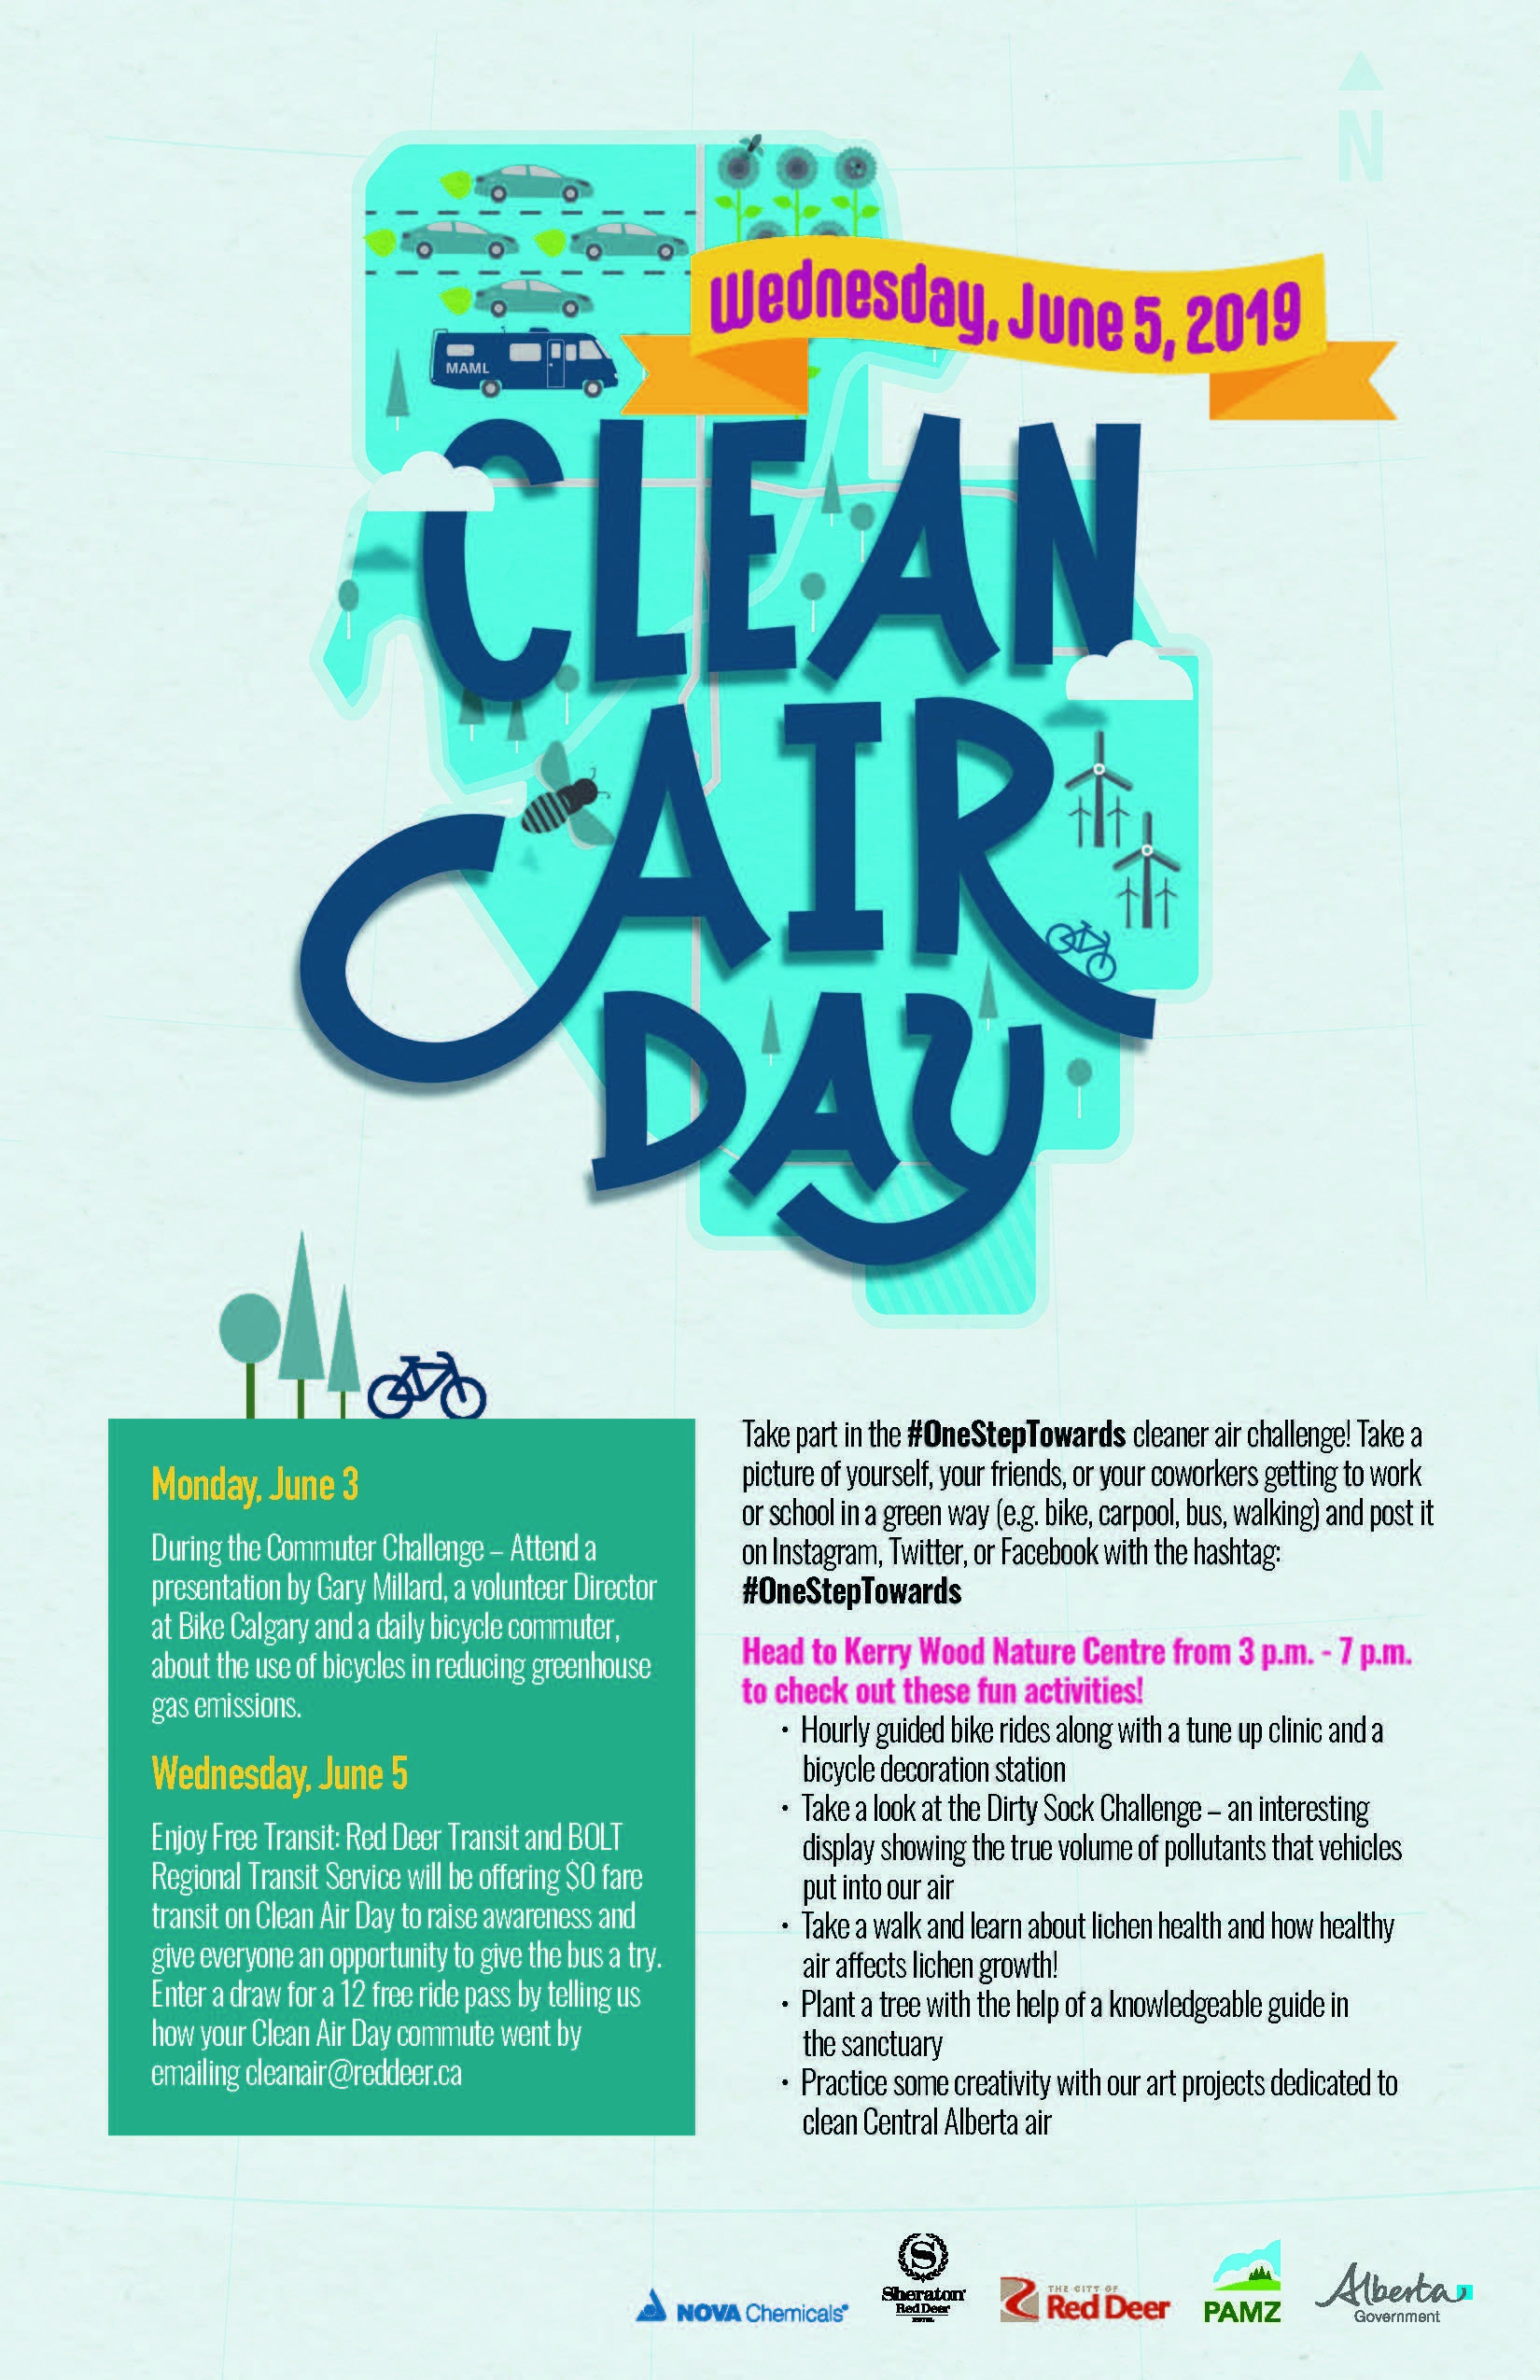 Clean Air Day @ Kerry Wood Nature Centre